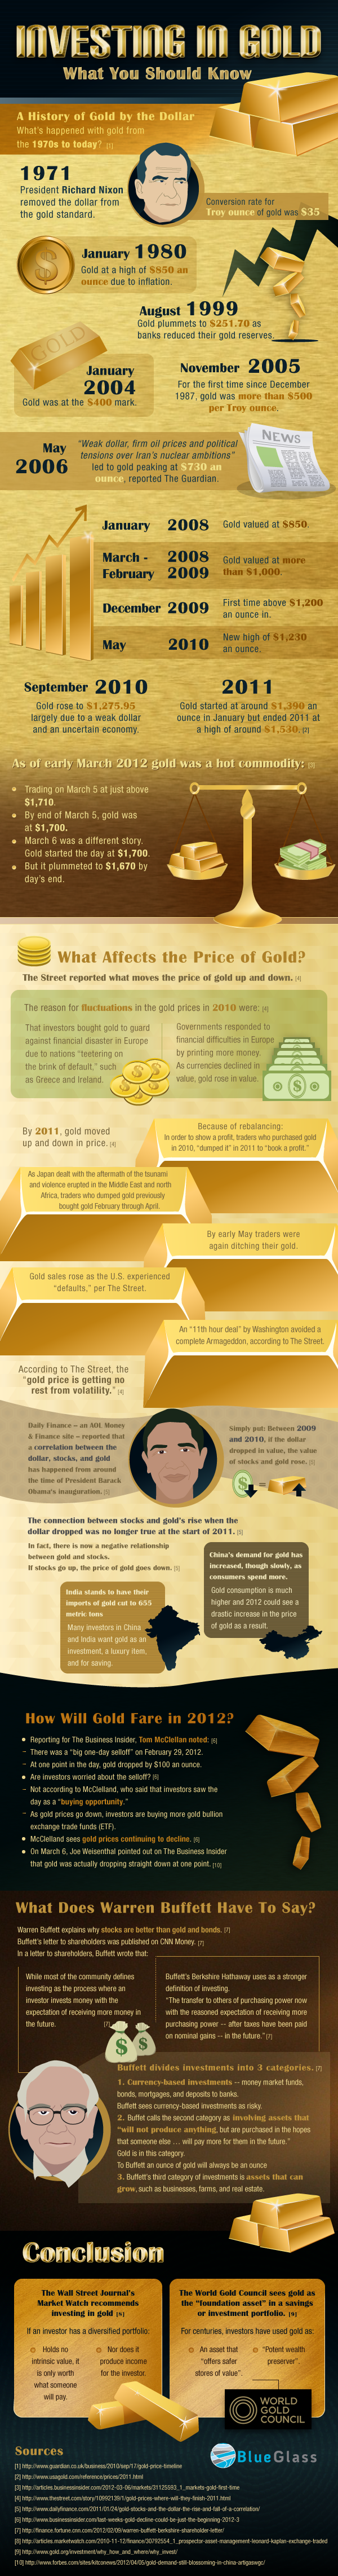 Infographic - Investing in Gold